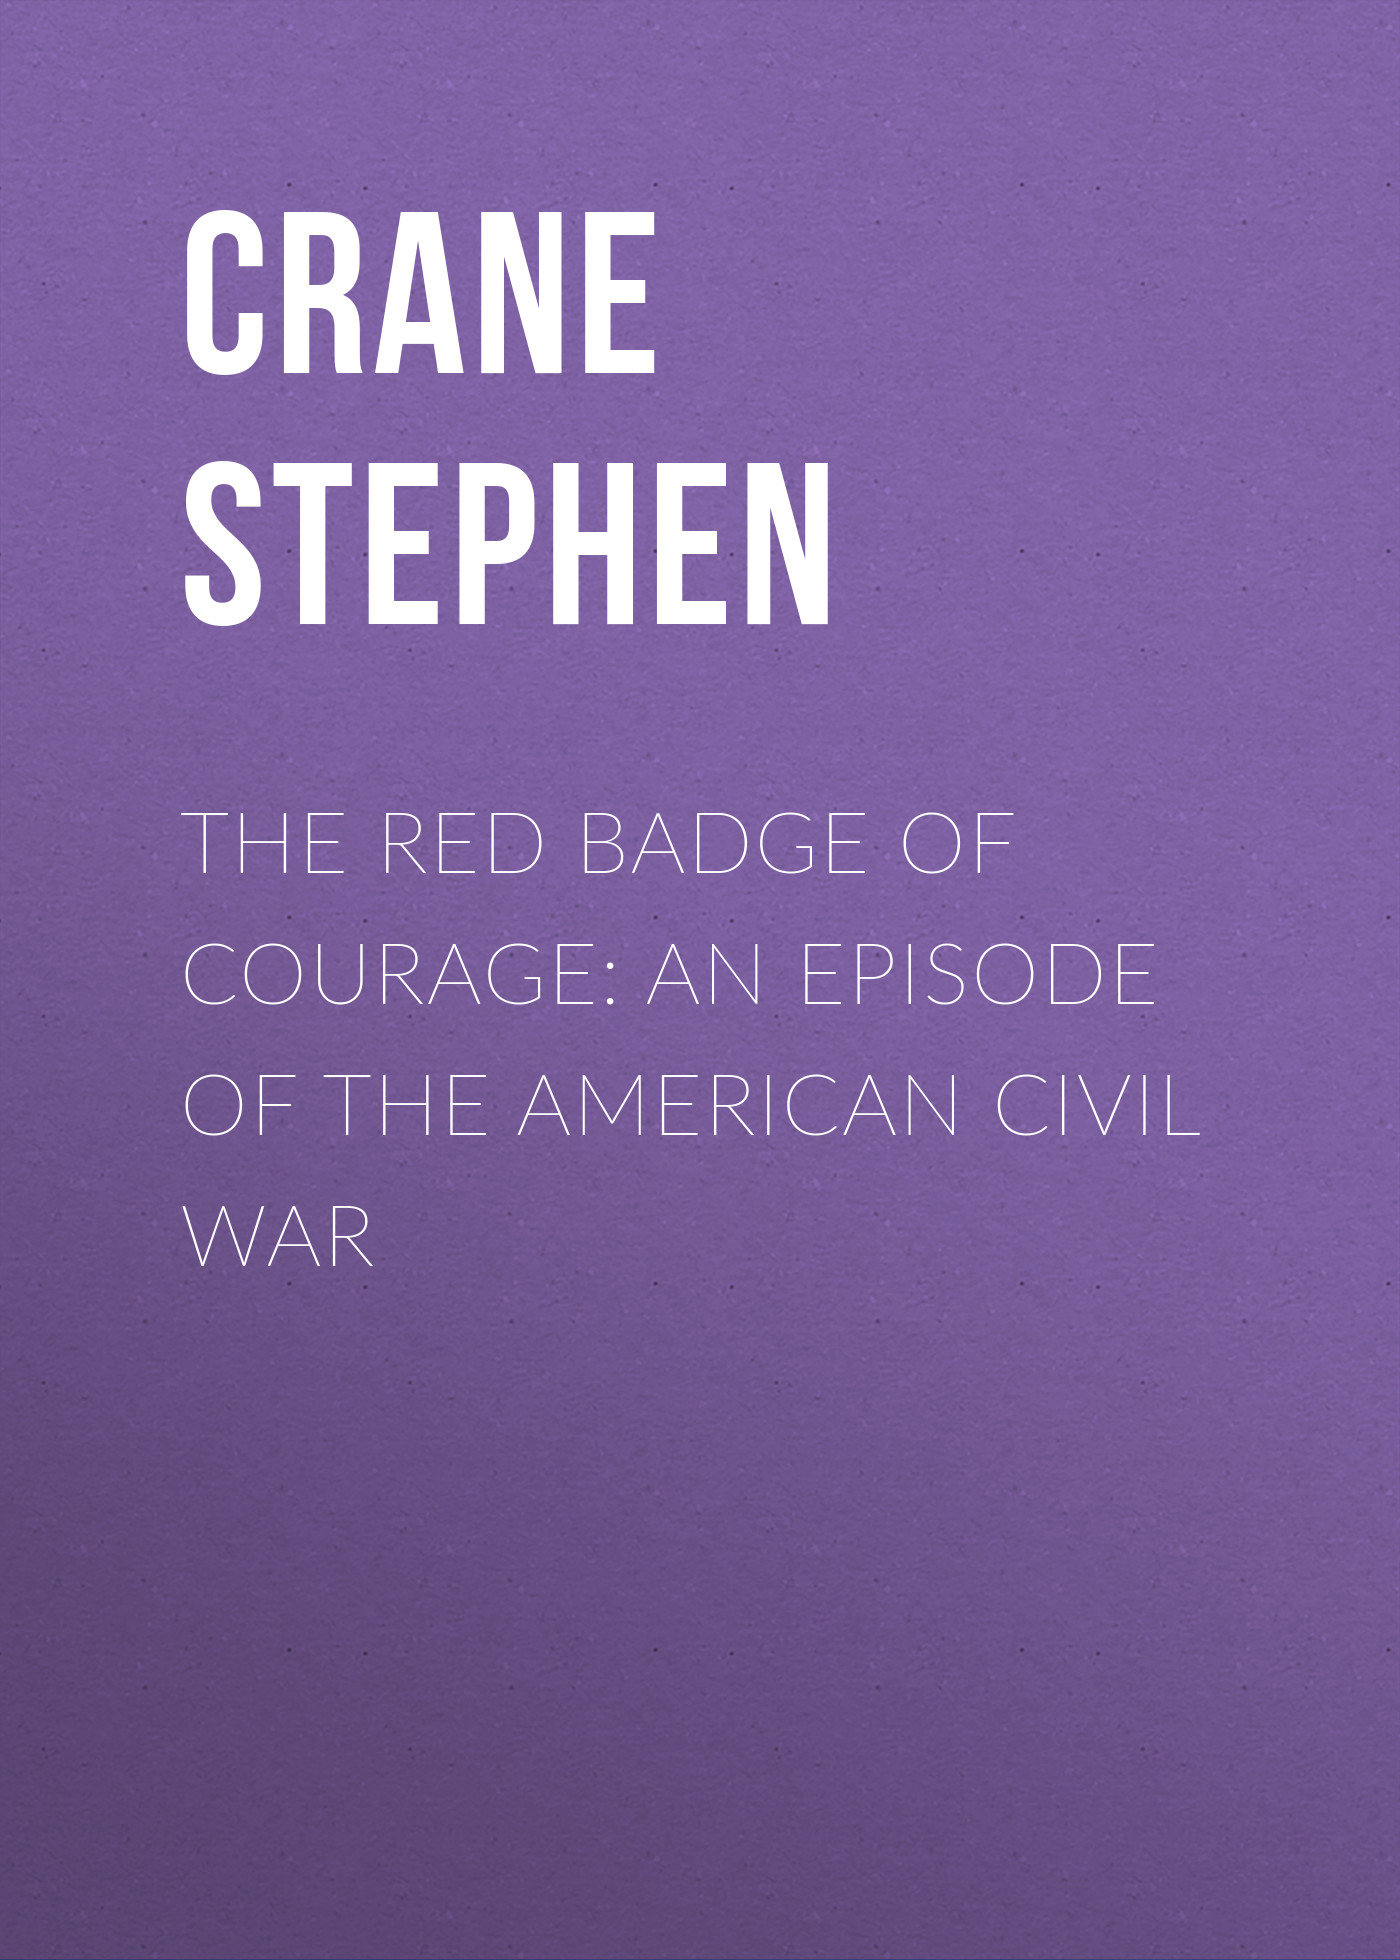 Crane Stephen The Red Badge of Courage: An Episode of the American Civil War the captain america 15cm civil war 1 6 joint movable pvc action figure model toy